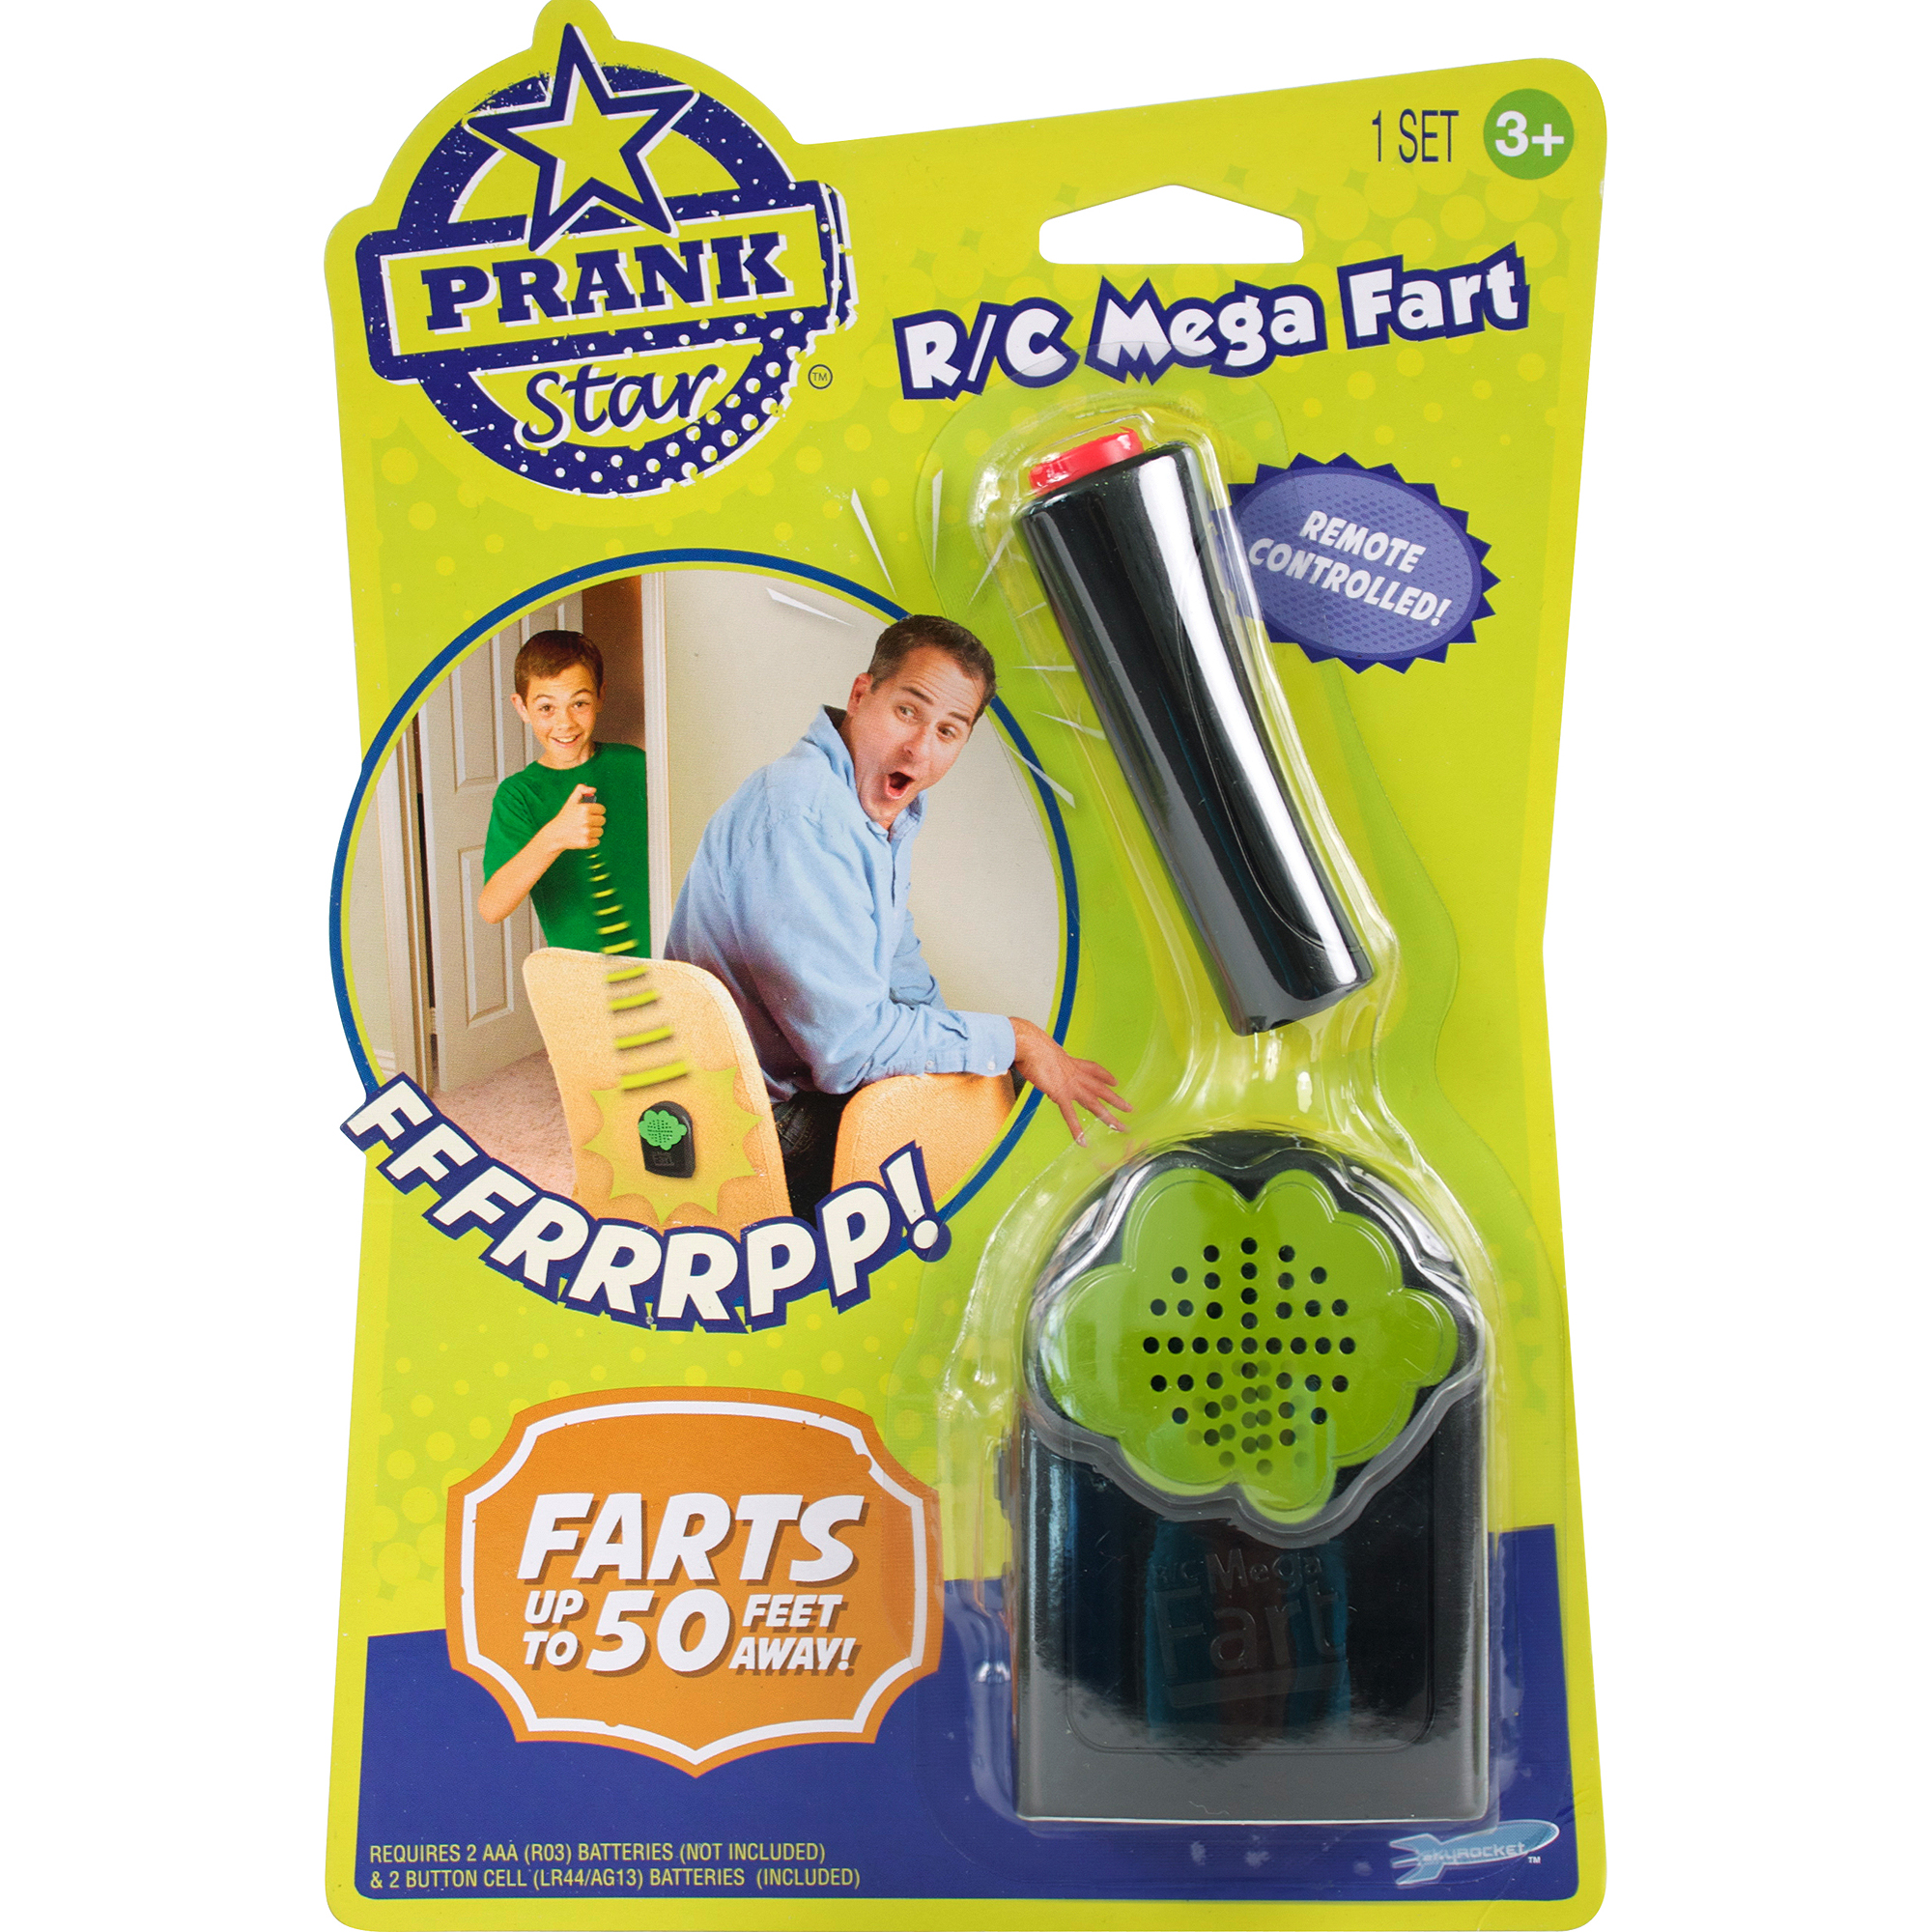 FART SPRAY WALMART